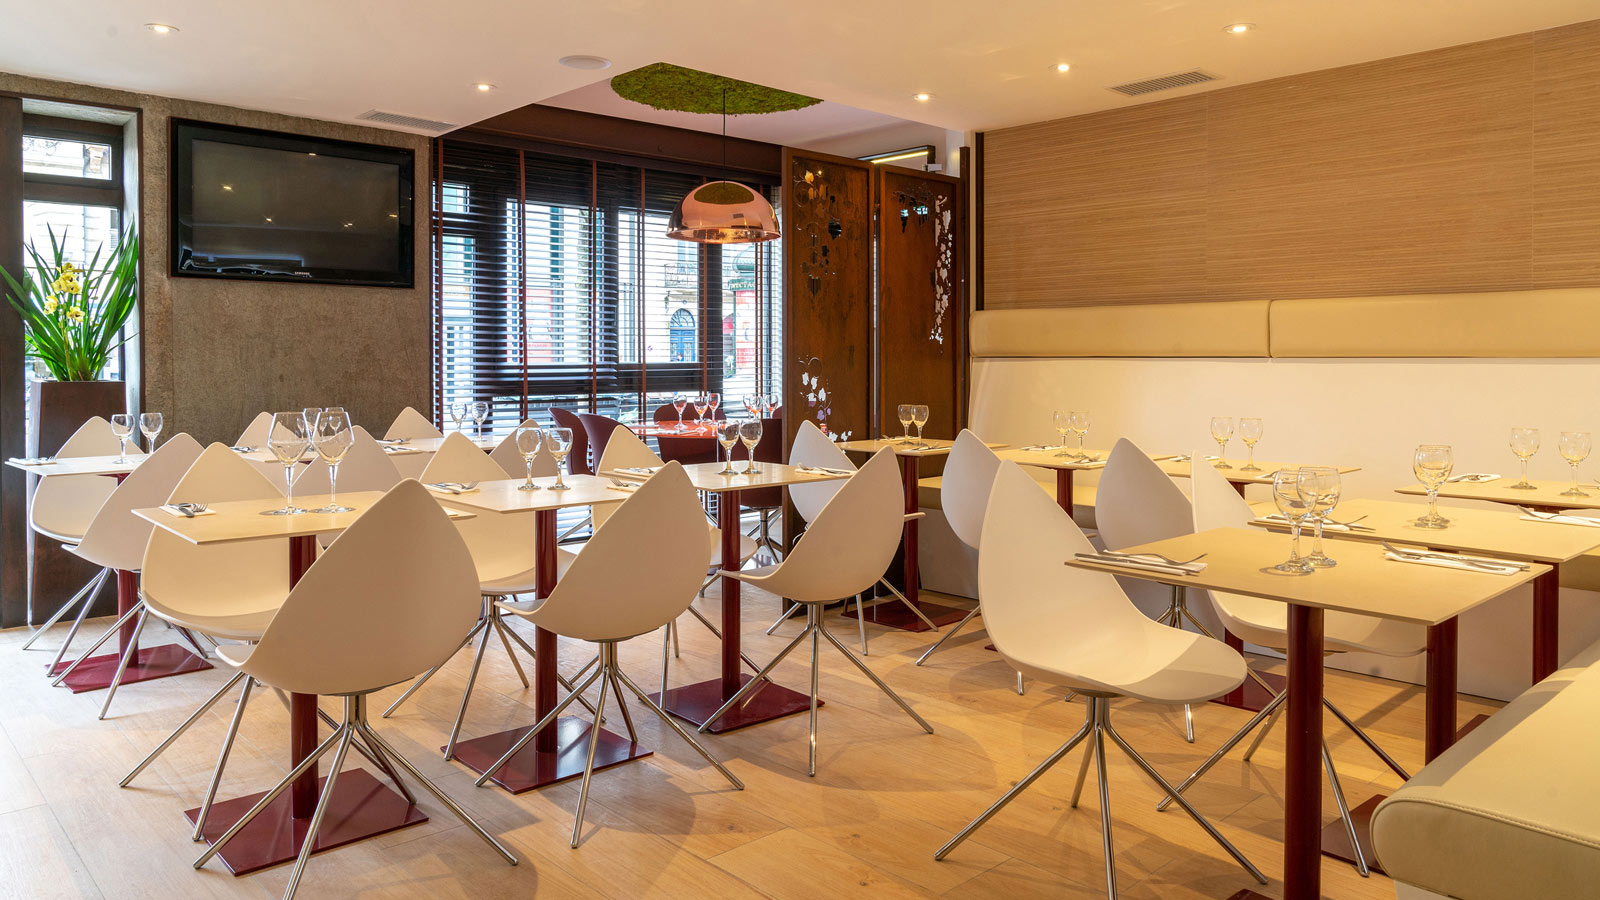 PORCELANOSA Group Projects: The Le Grand Café restaurant in Bordeaux extends its menu through materials from the PORCELANOSA Group